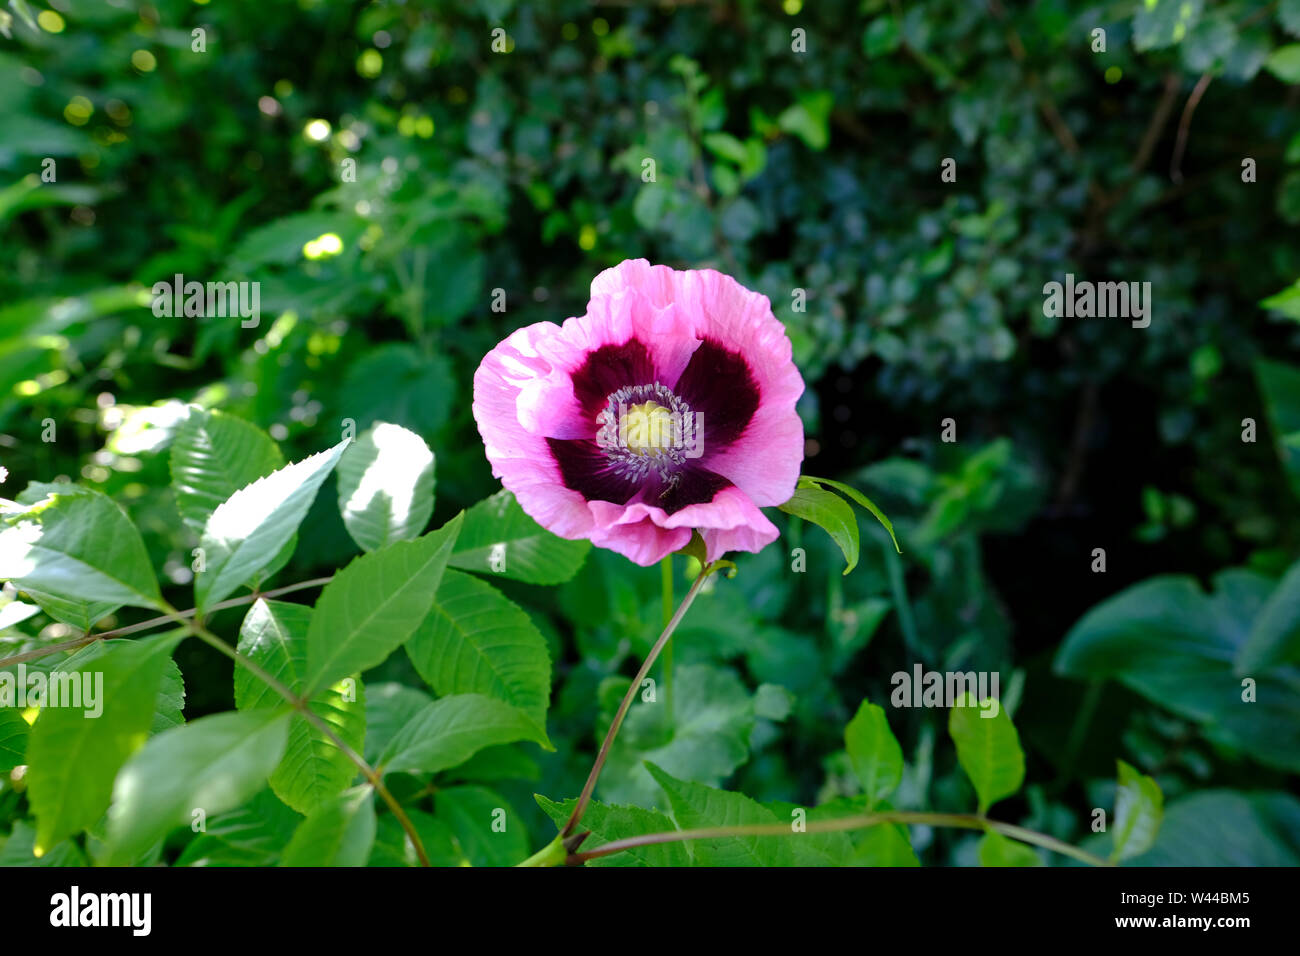 Wild Poppy flower in the herbaceous border of an English cottage garden Stock Photo